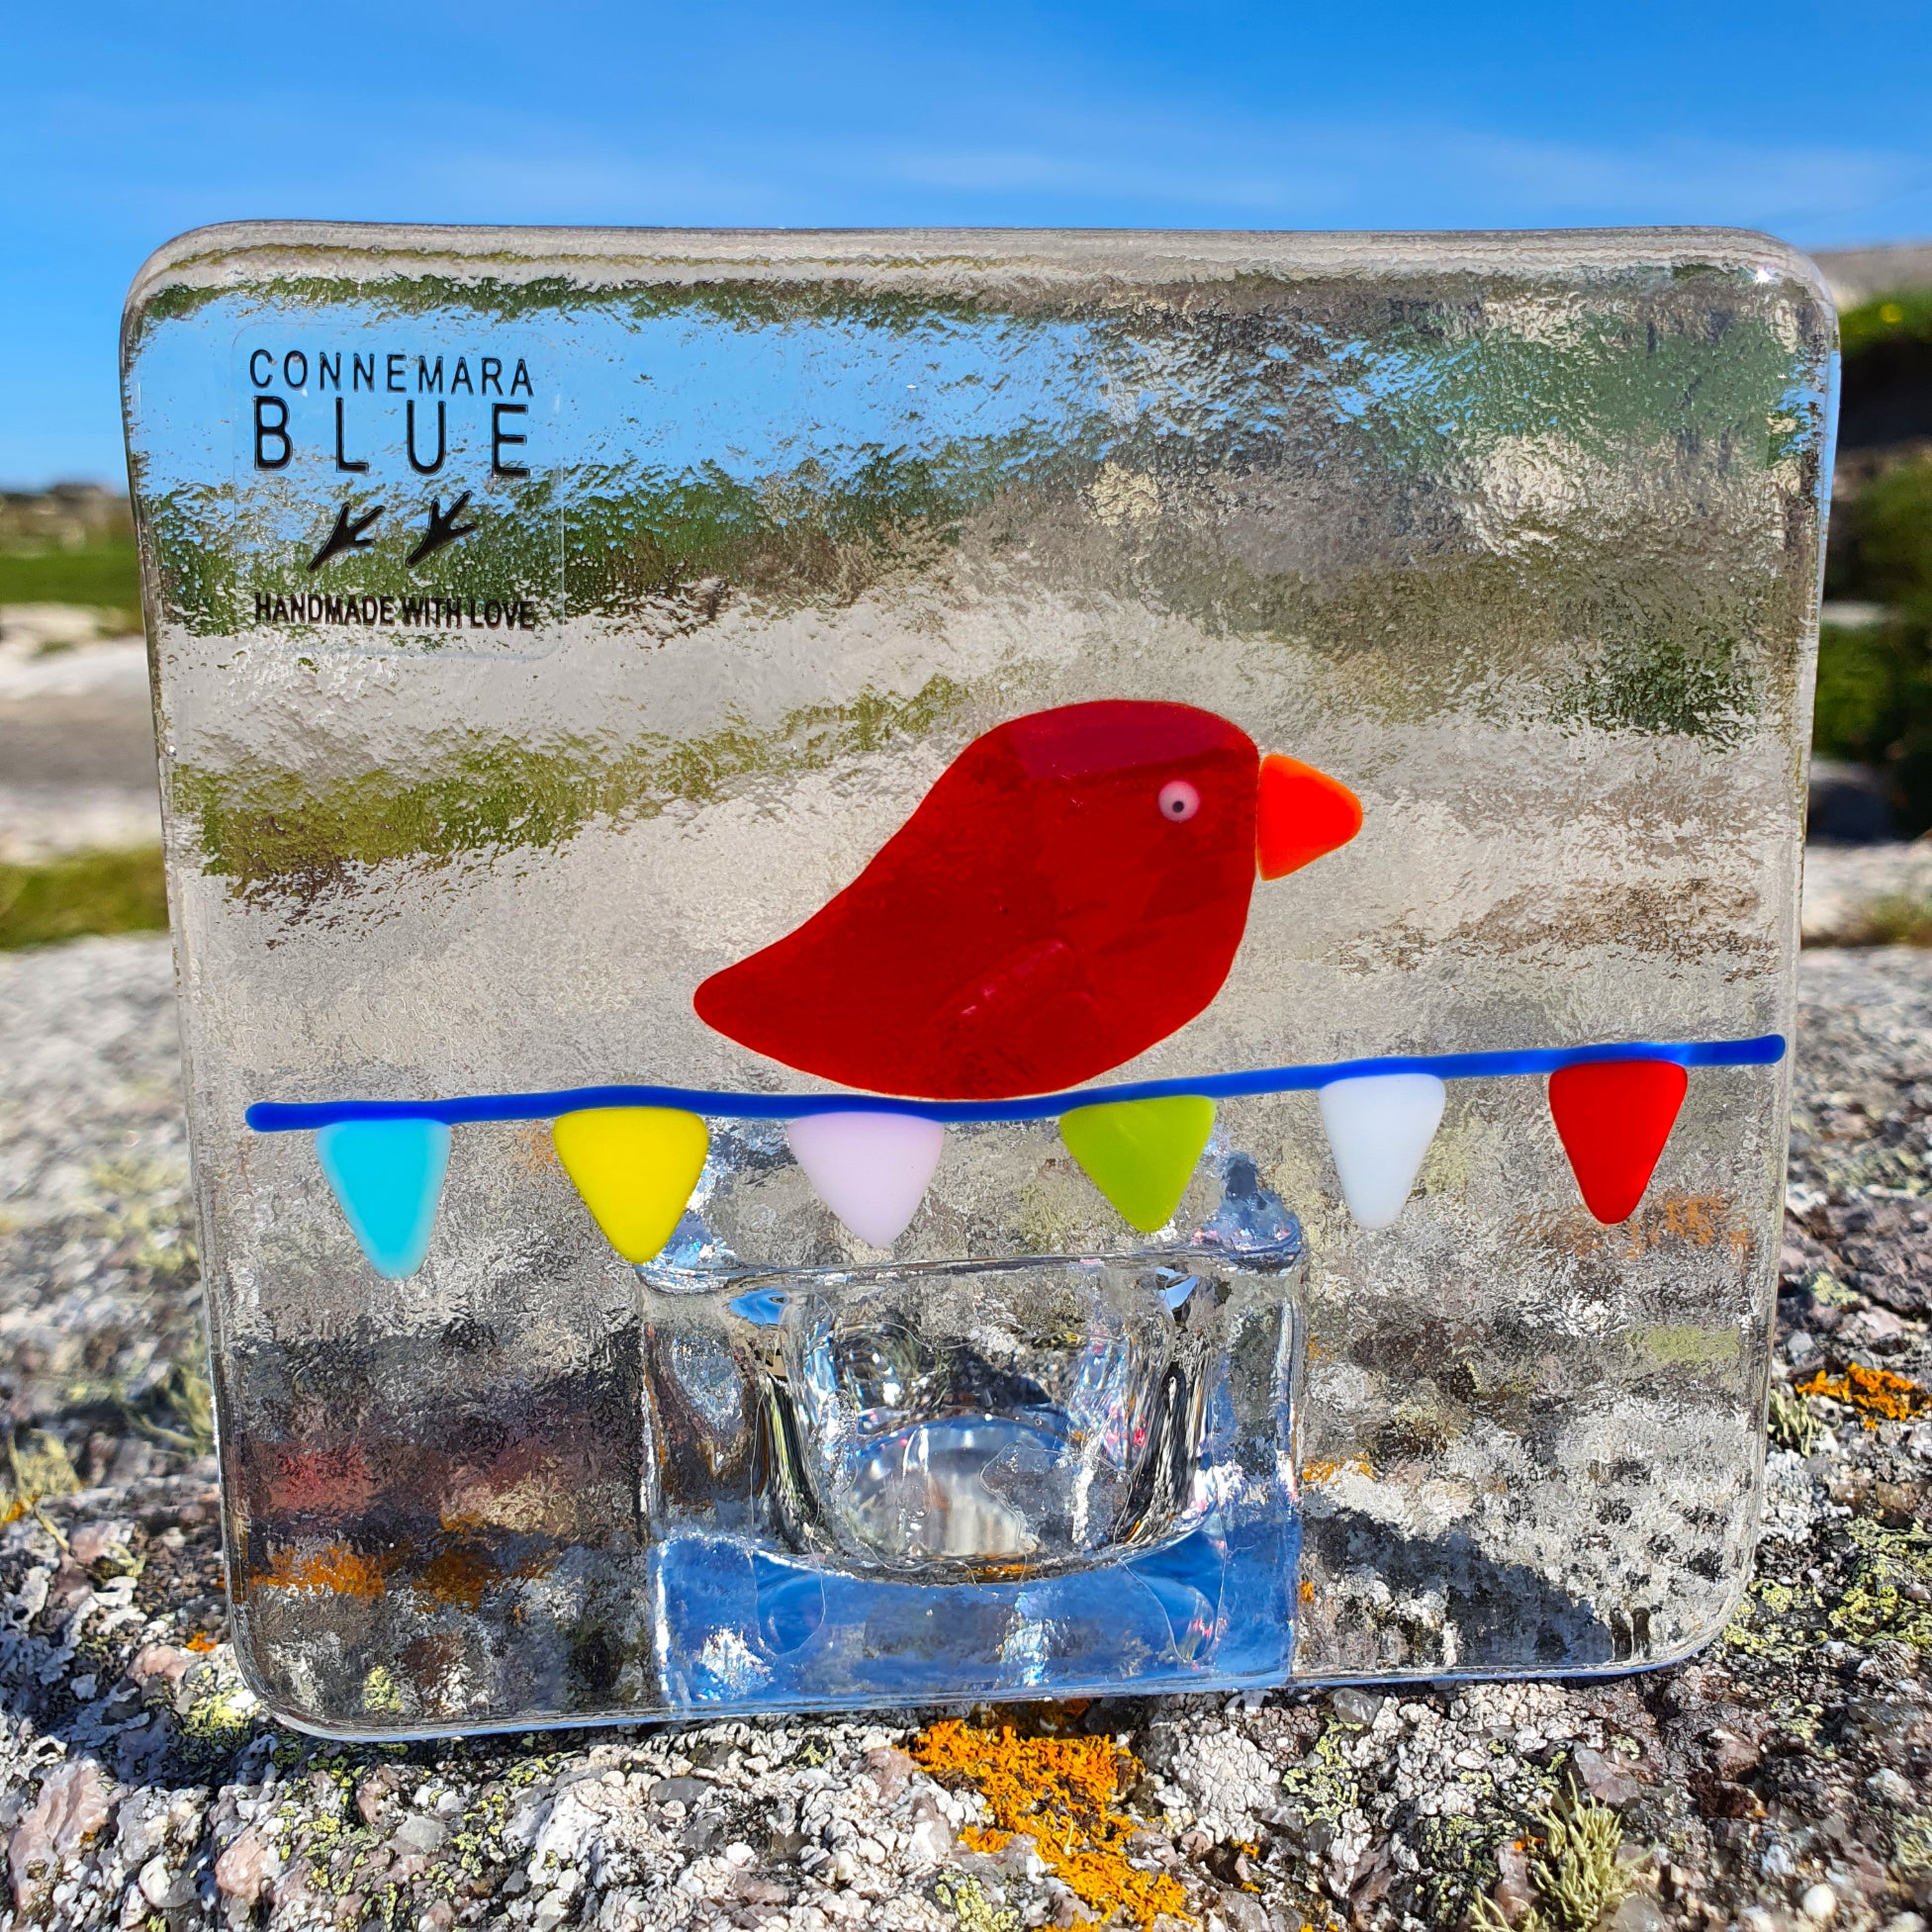 Fused glass tealight holder featuring a red bird on bunting, handmade by Connemara Blue